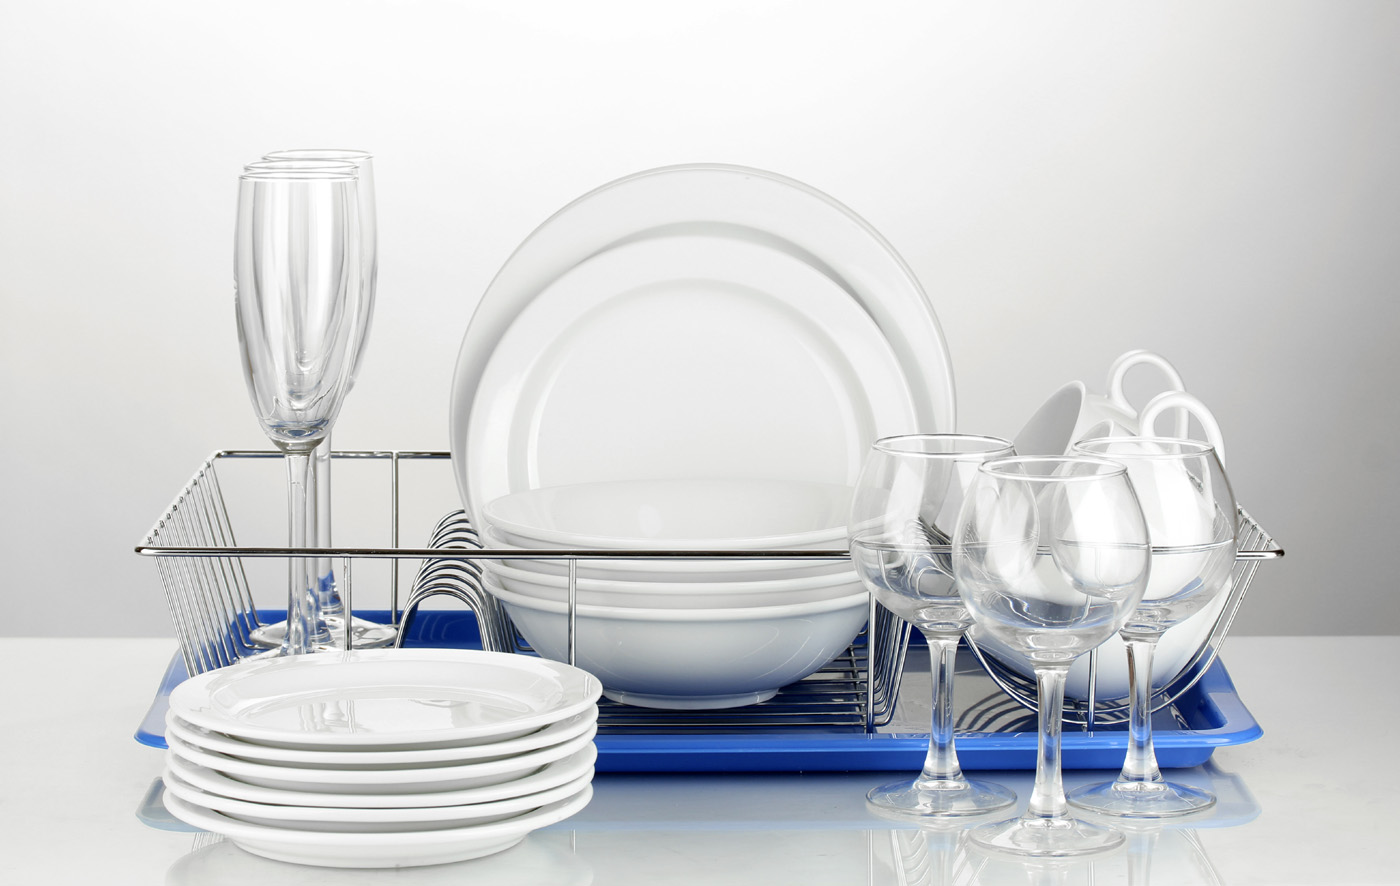 Goblets and plates cutlery 51130